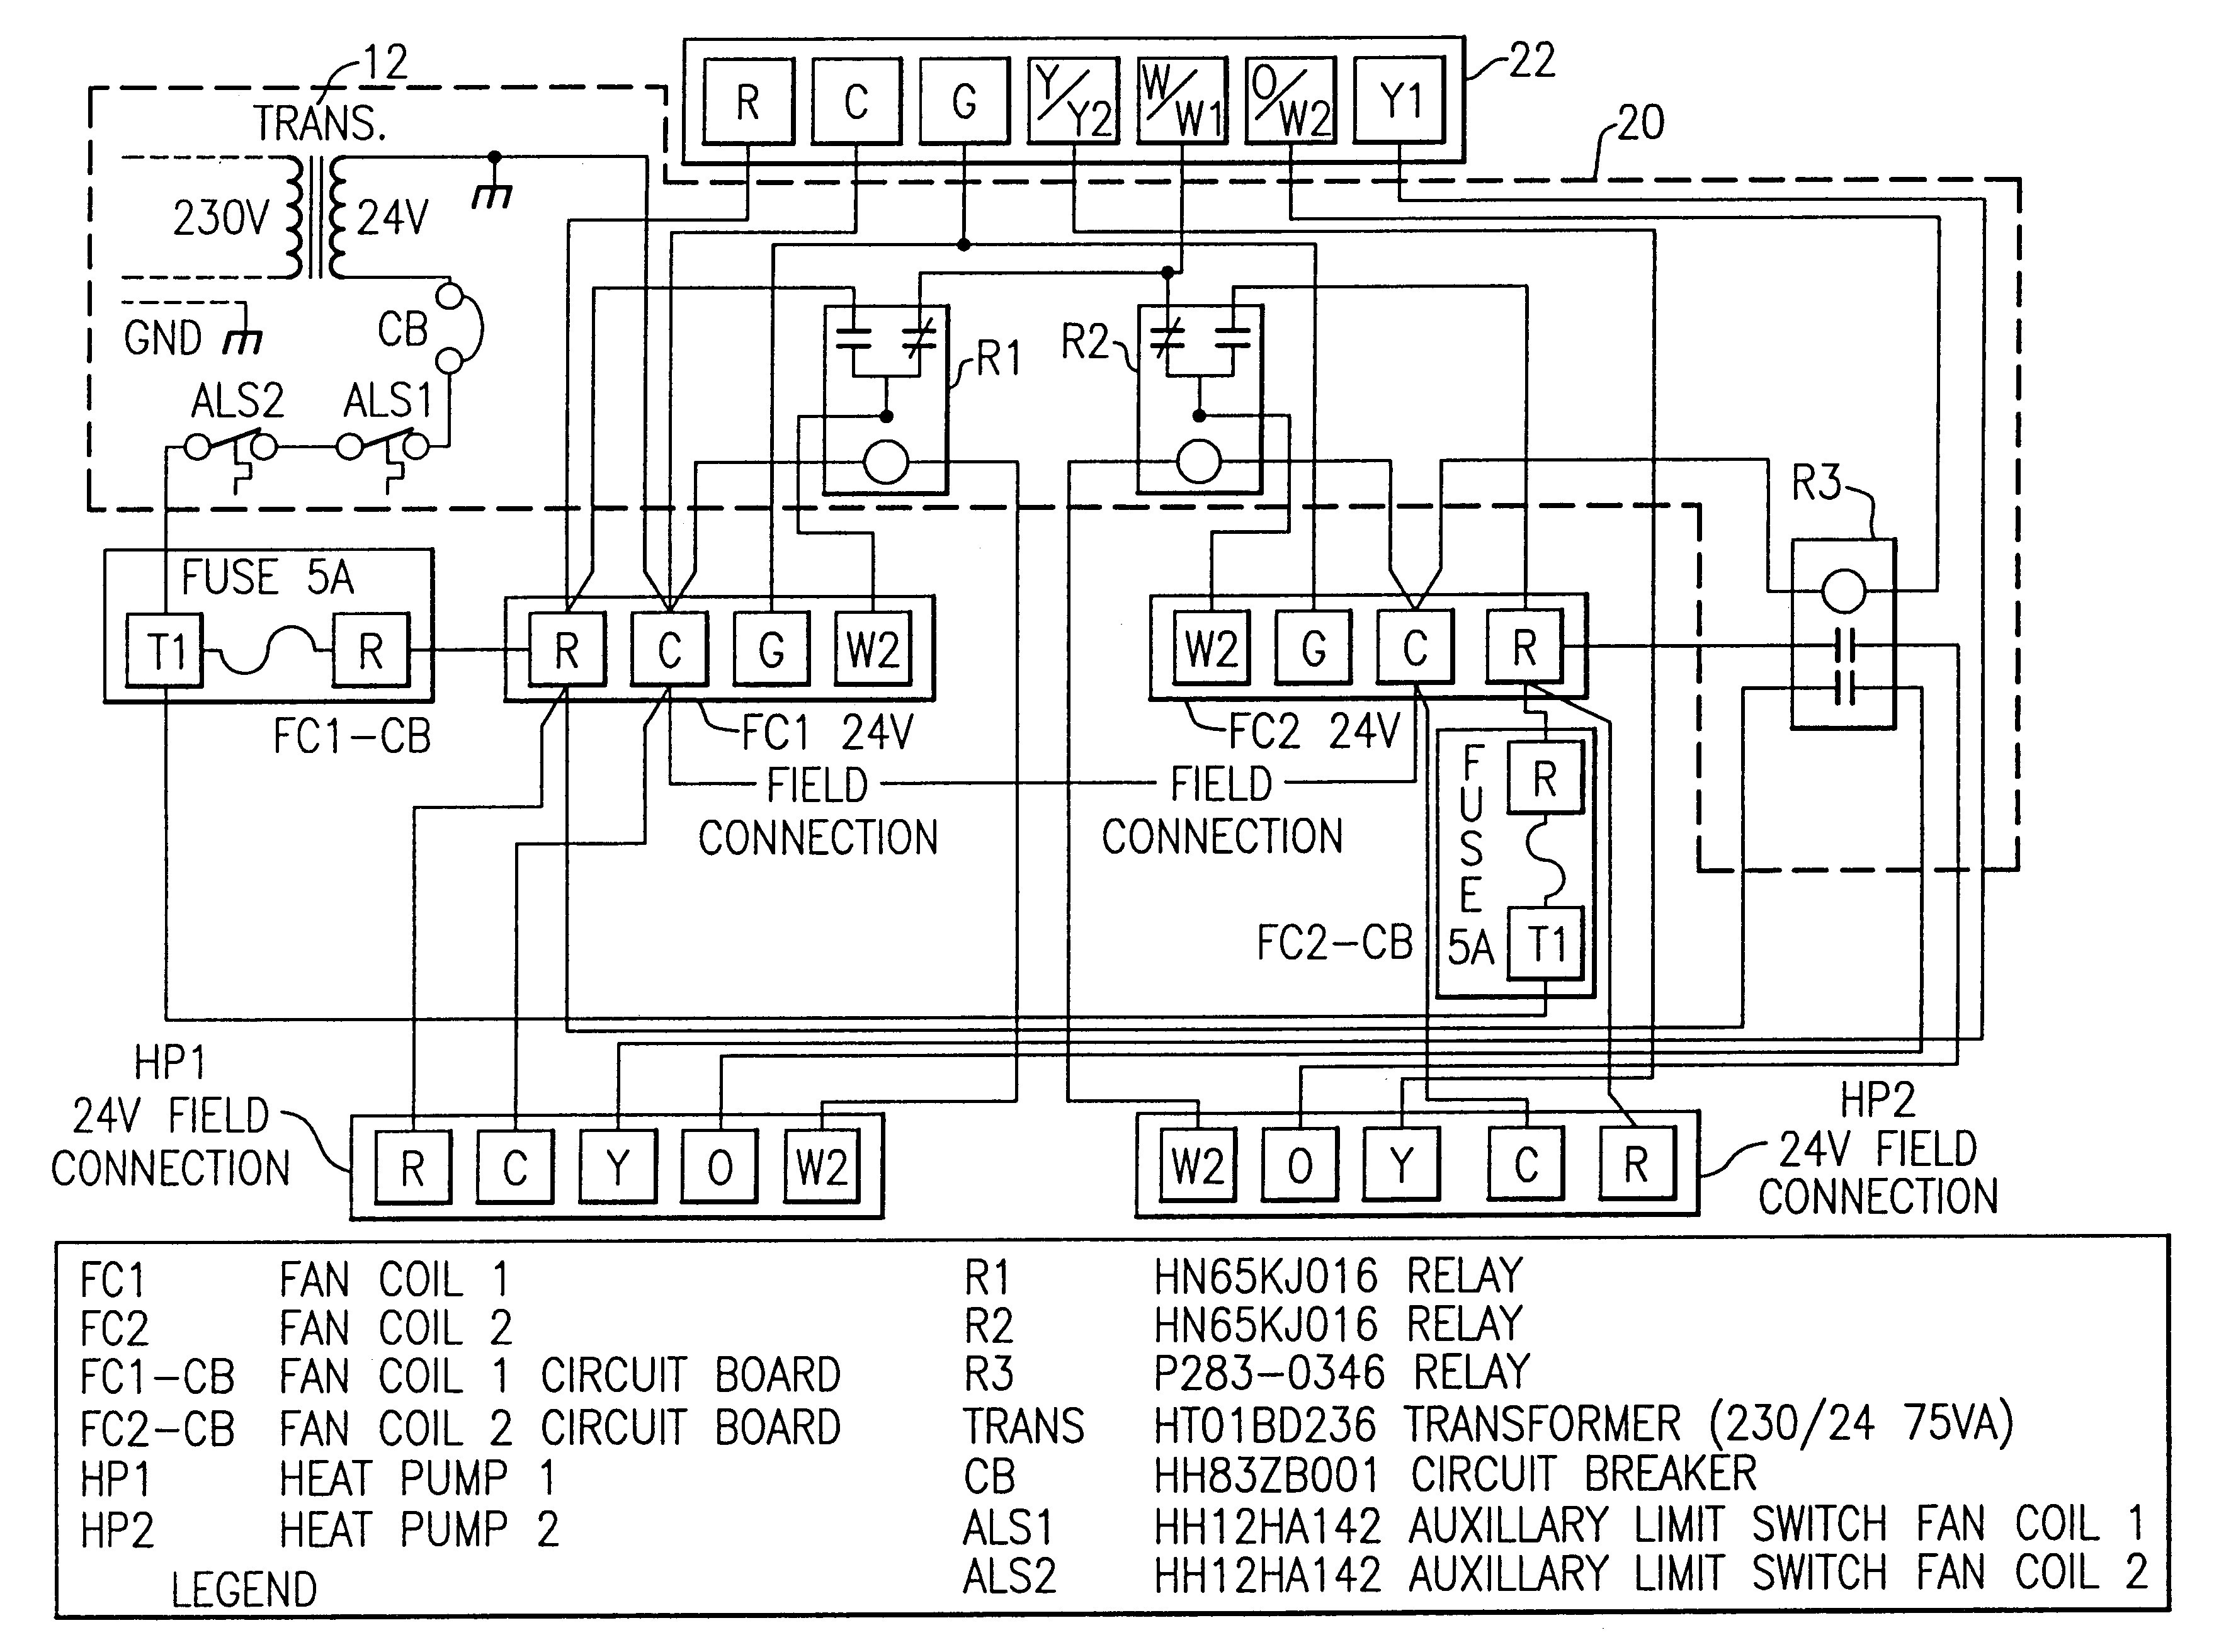 York Ac Schematics Df 072 | Wiring Diagram Ac Unit Diagram Wiring Schematic on